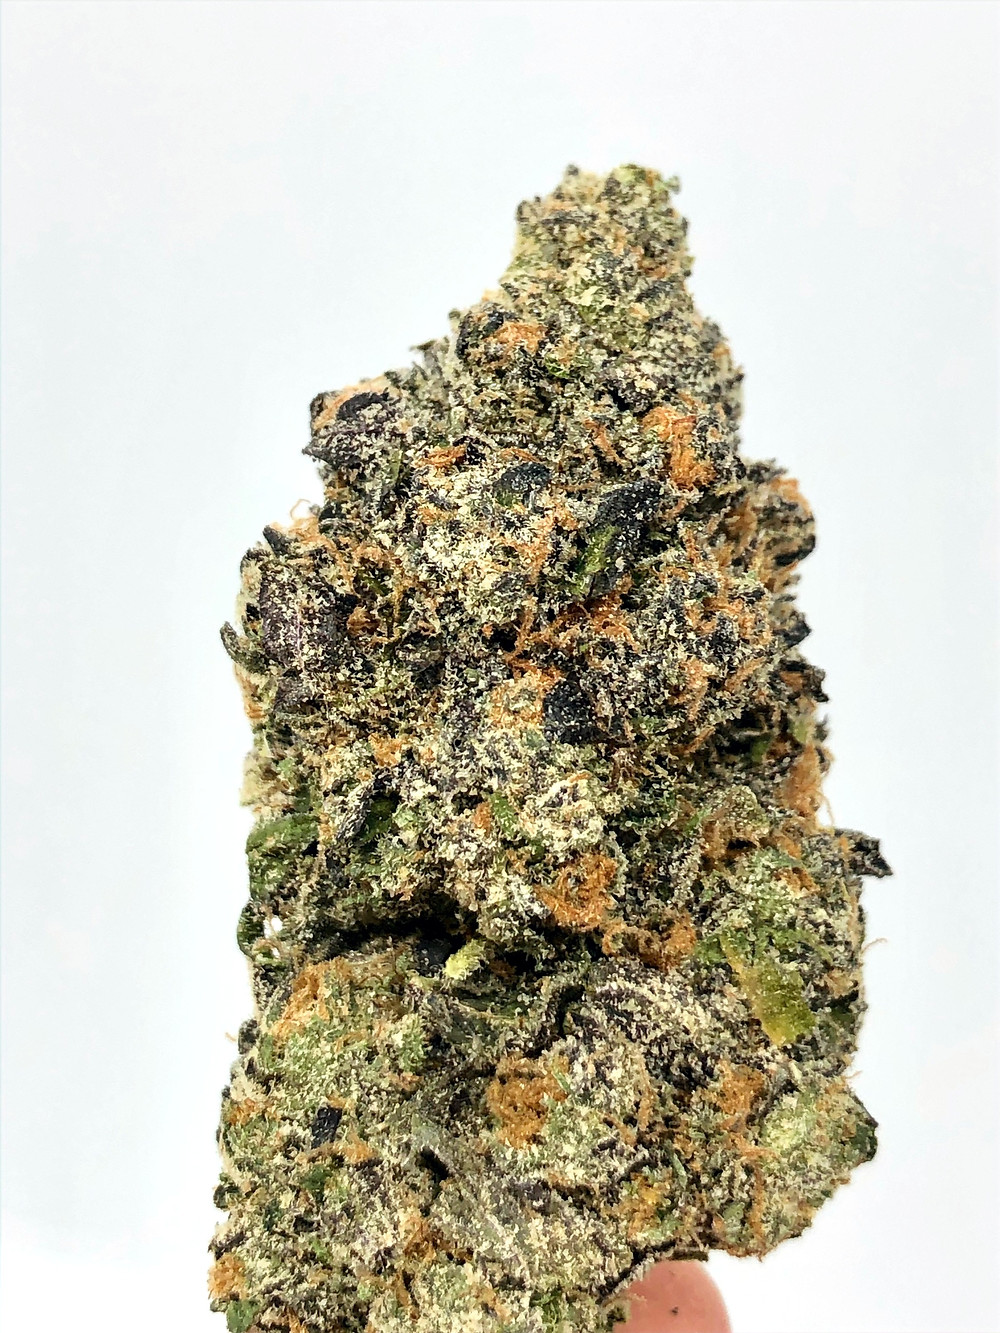 gruntz-review-top-secret-dc-weed-delivery